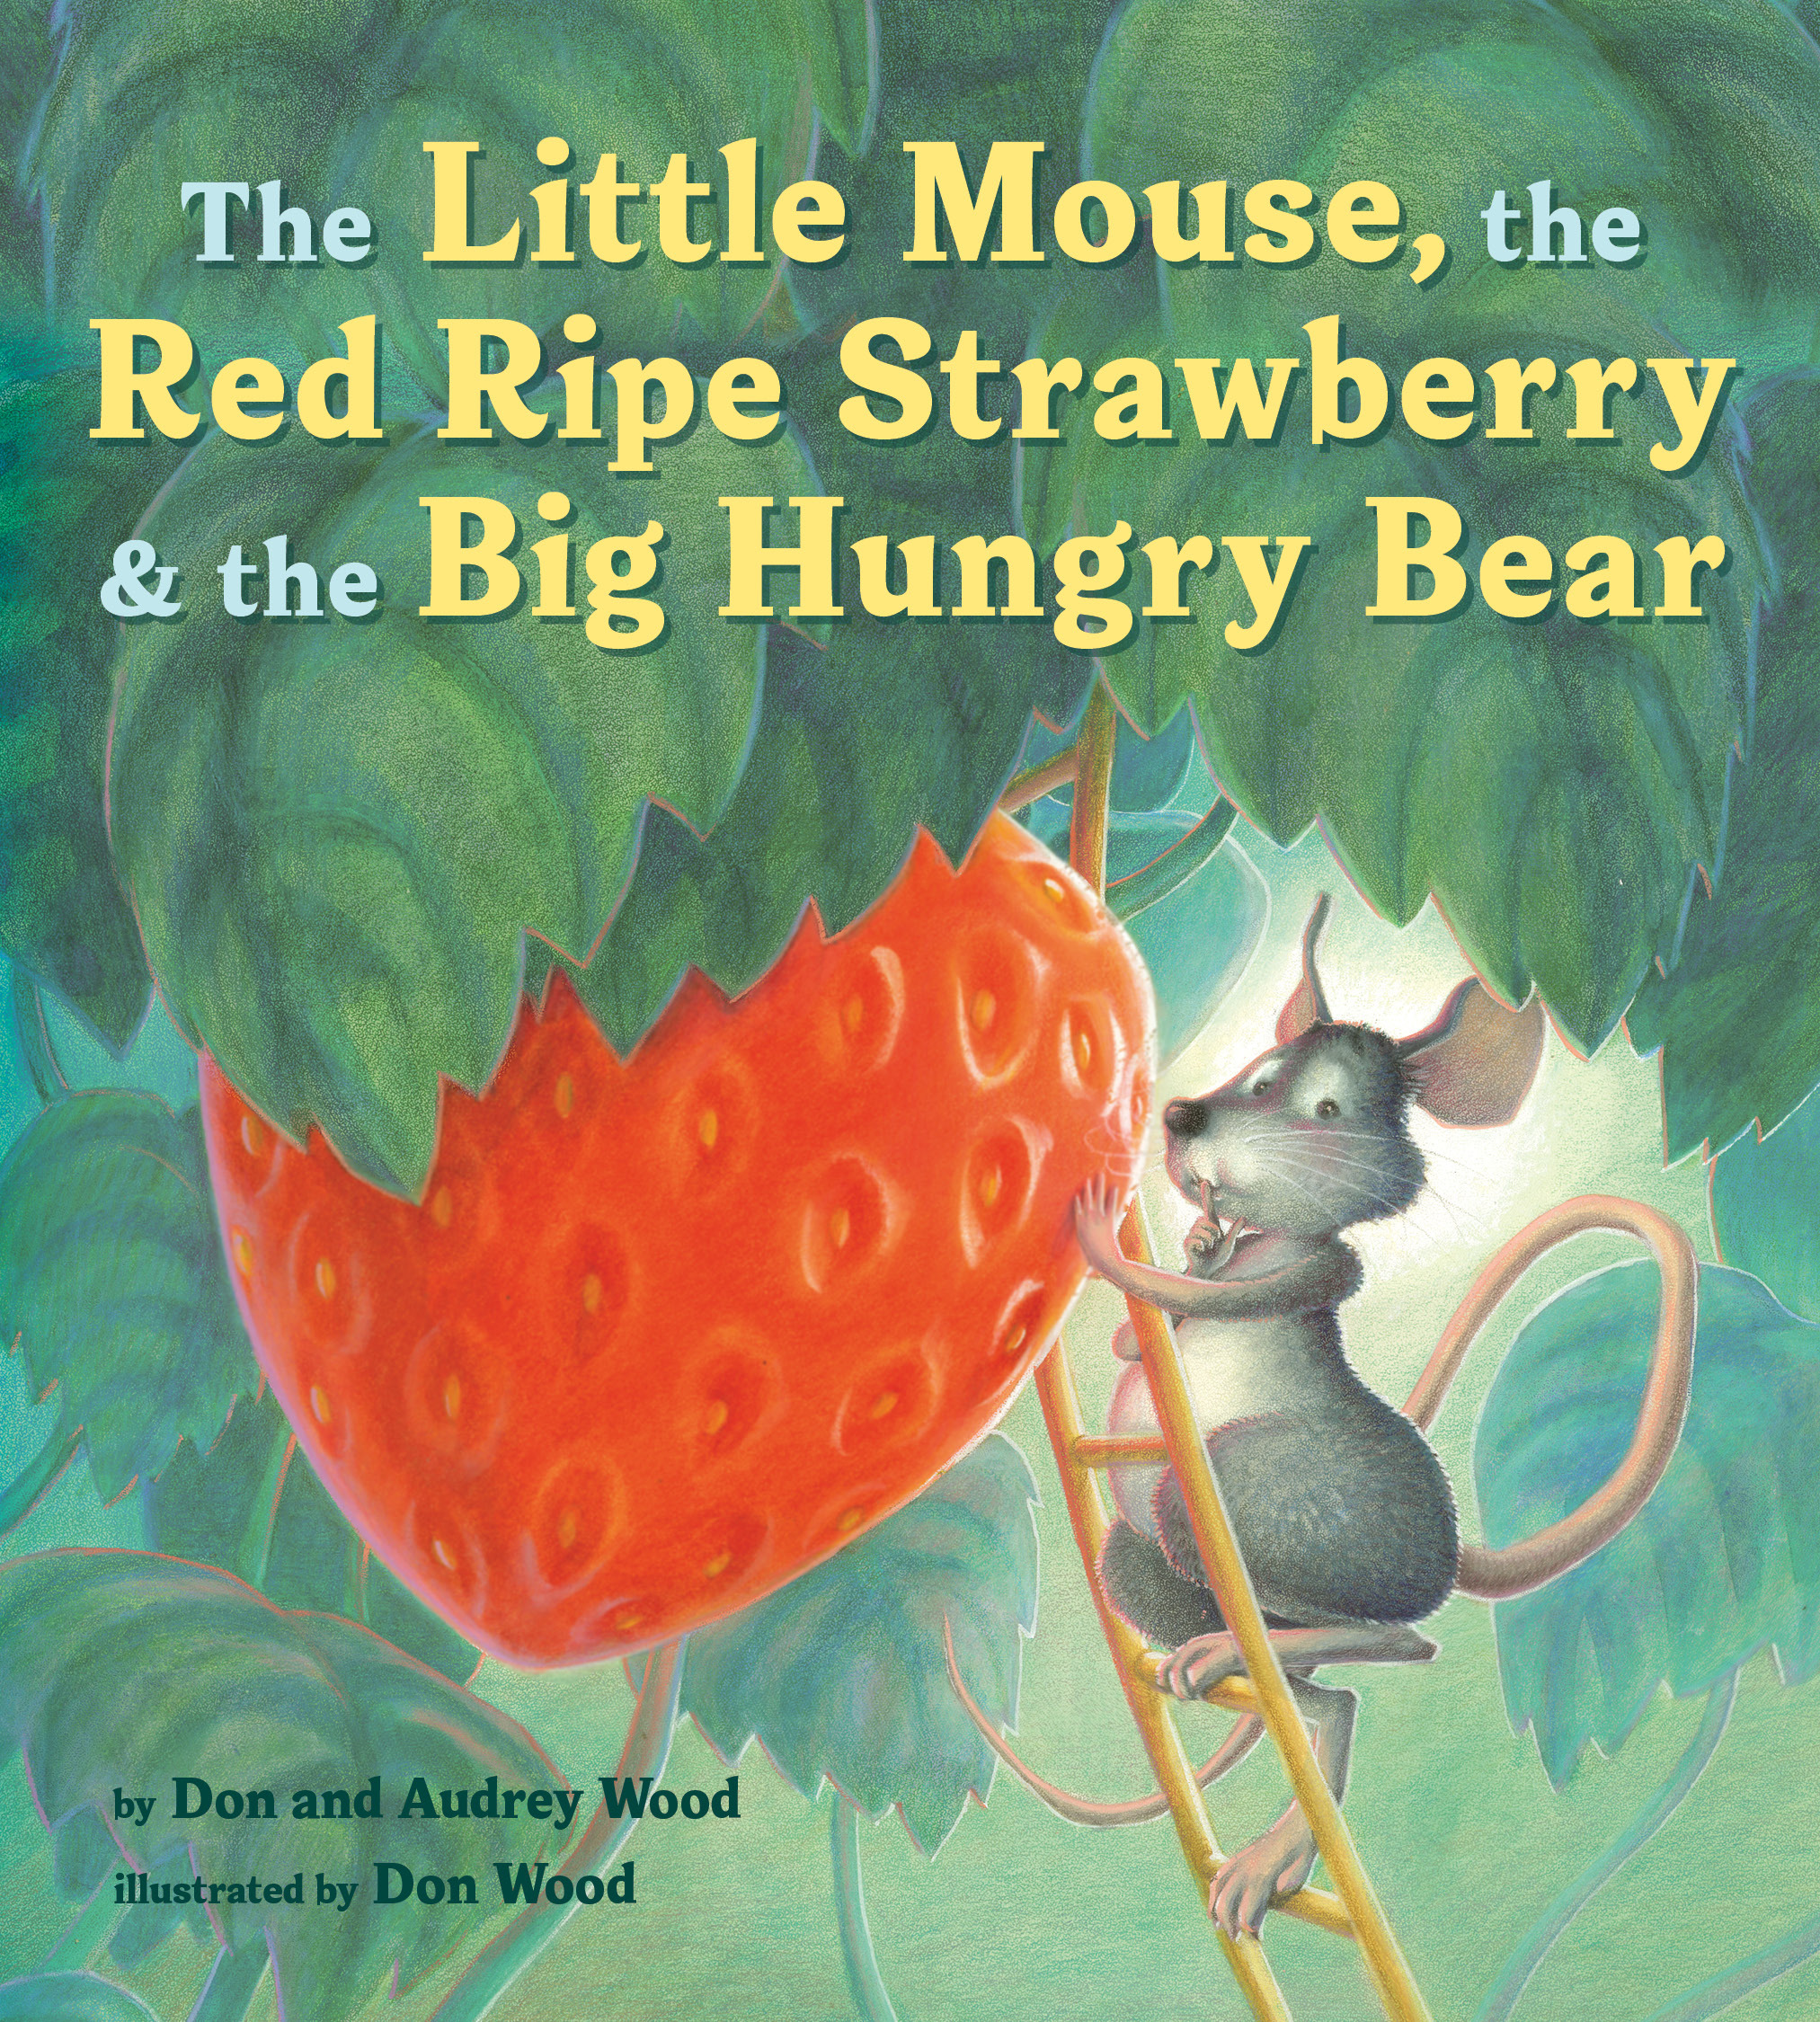 The Little Mouse, the Red Ripe Strawberry, and the Big Hungry Bear-9780358362616